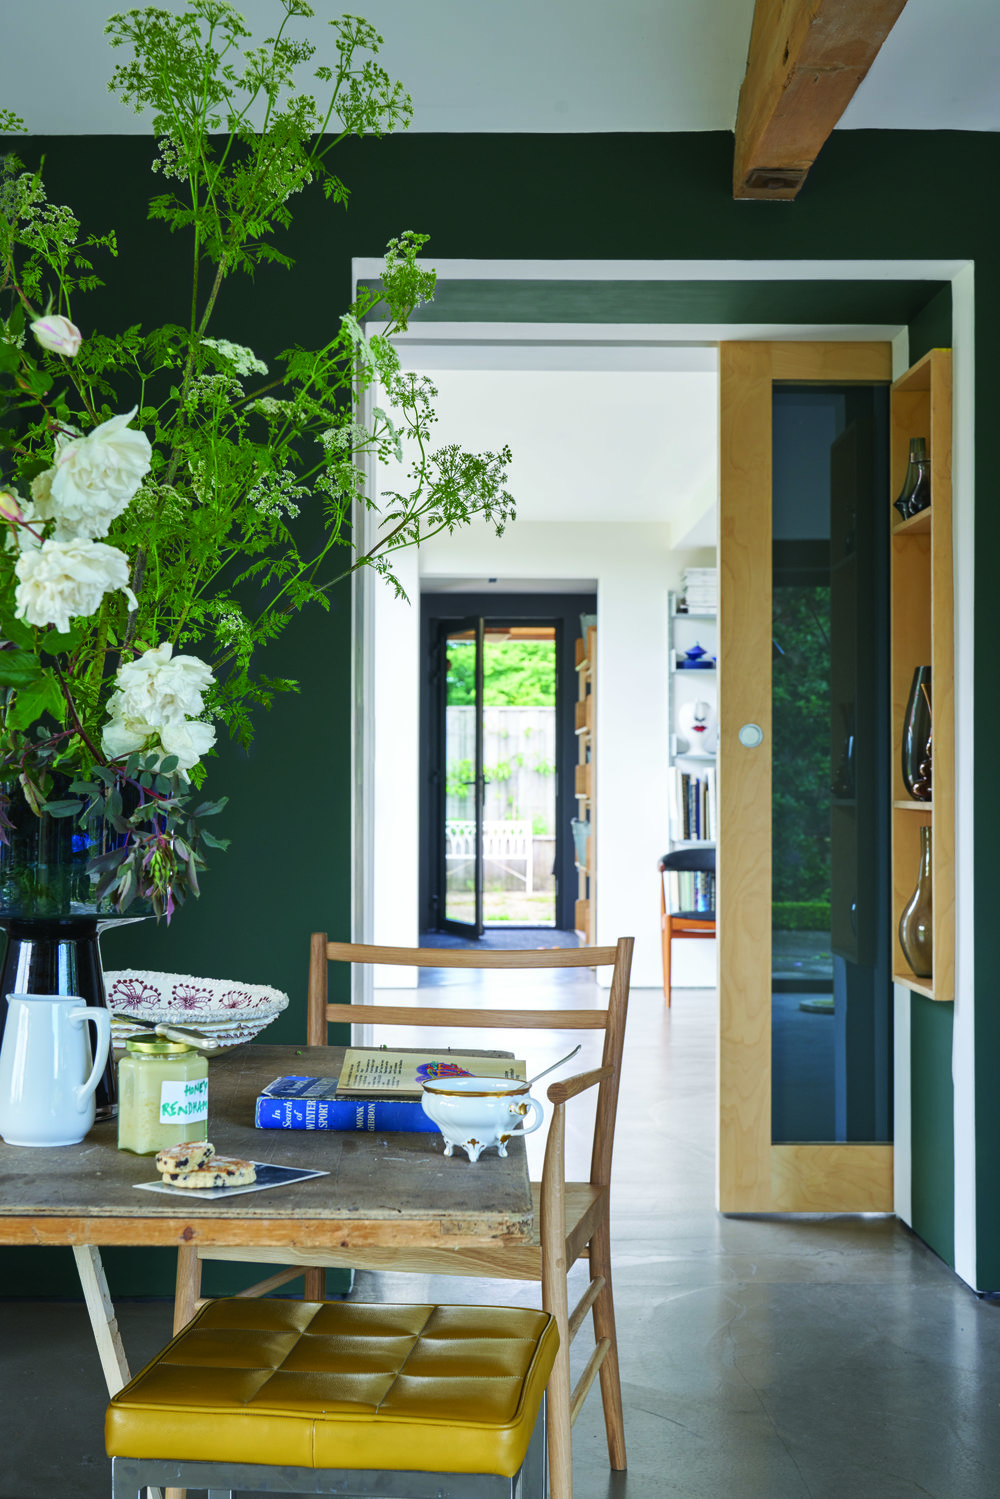 Image courtesty of Farrow & Ball